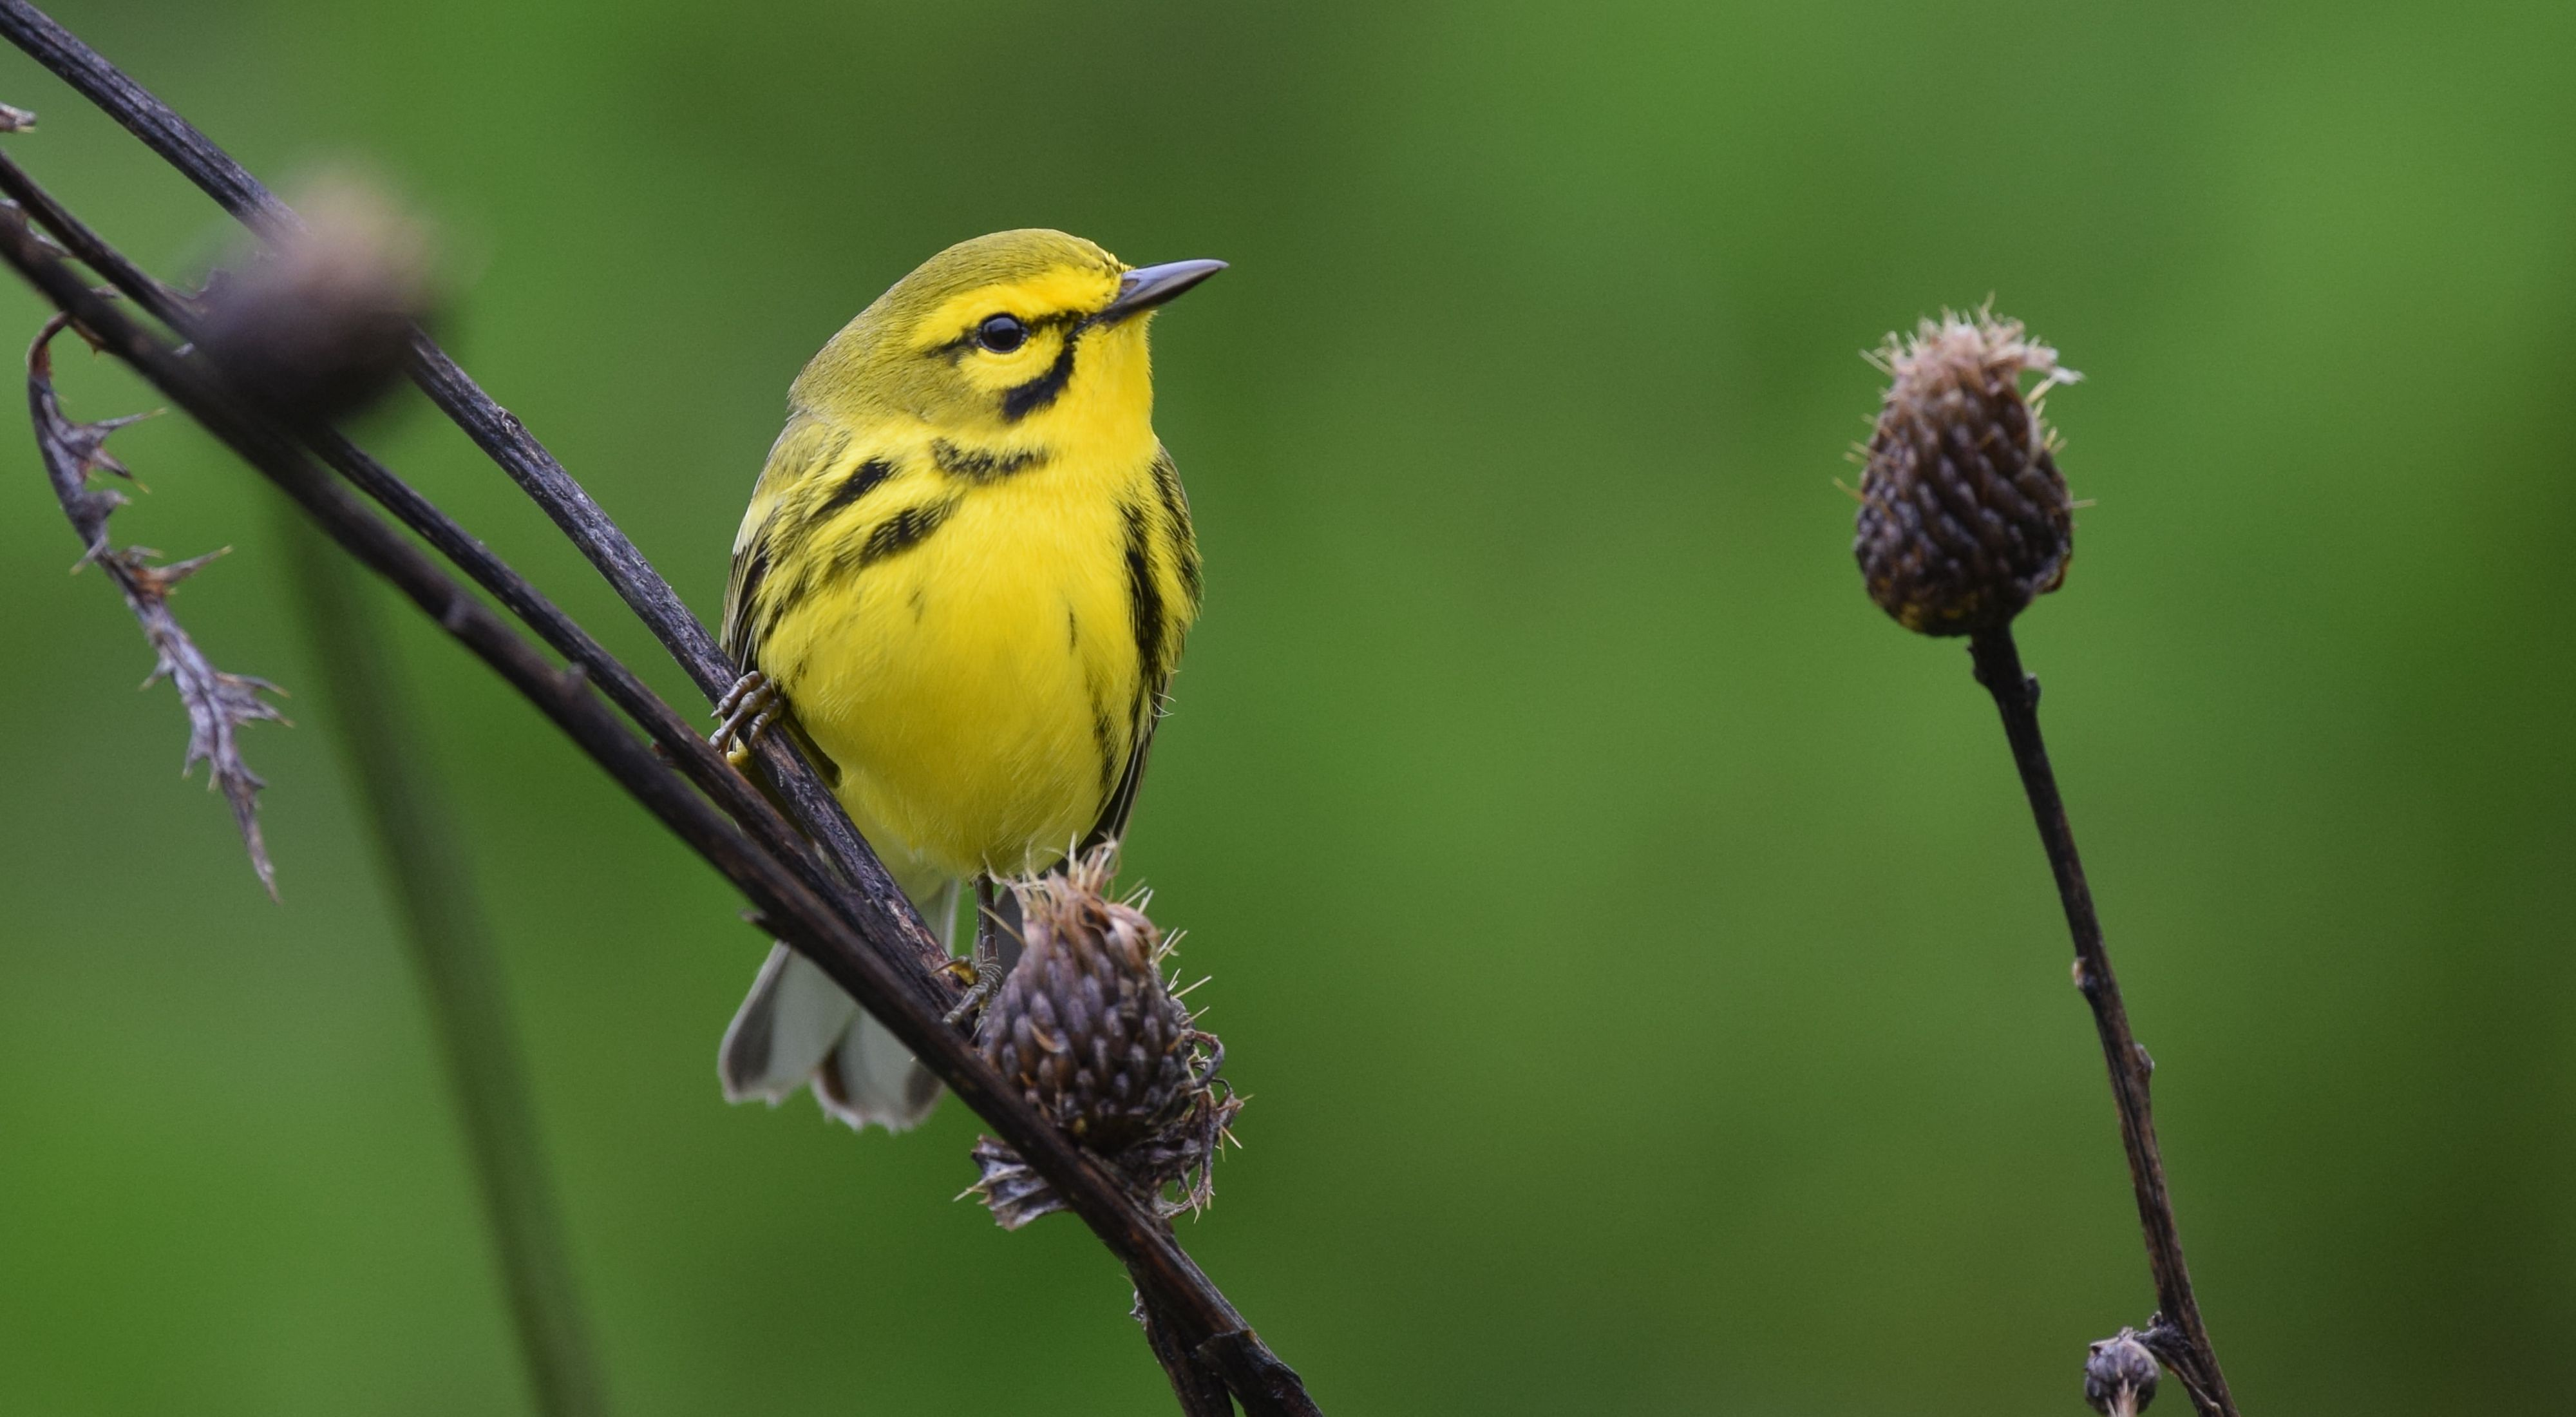 A small yellow bird rests on a branch.